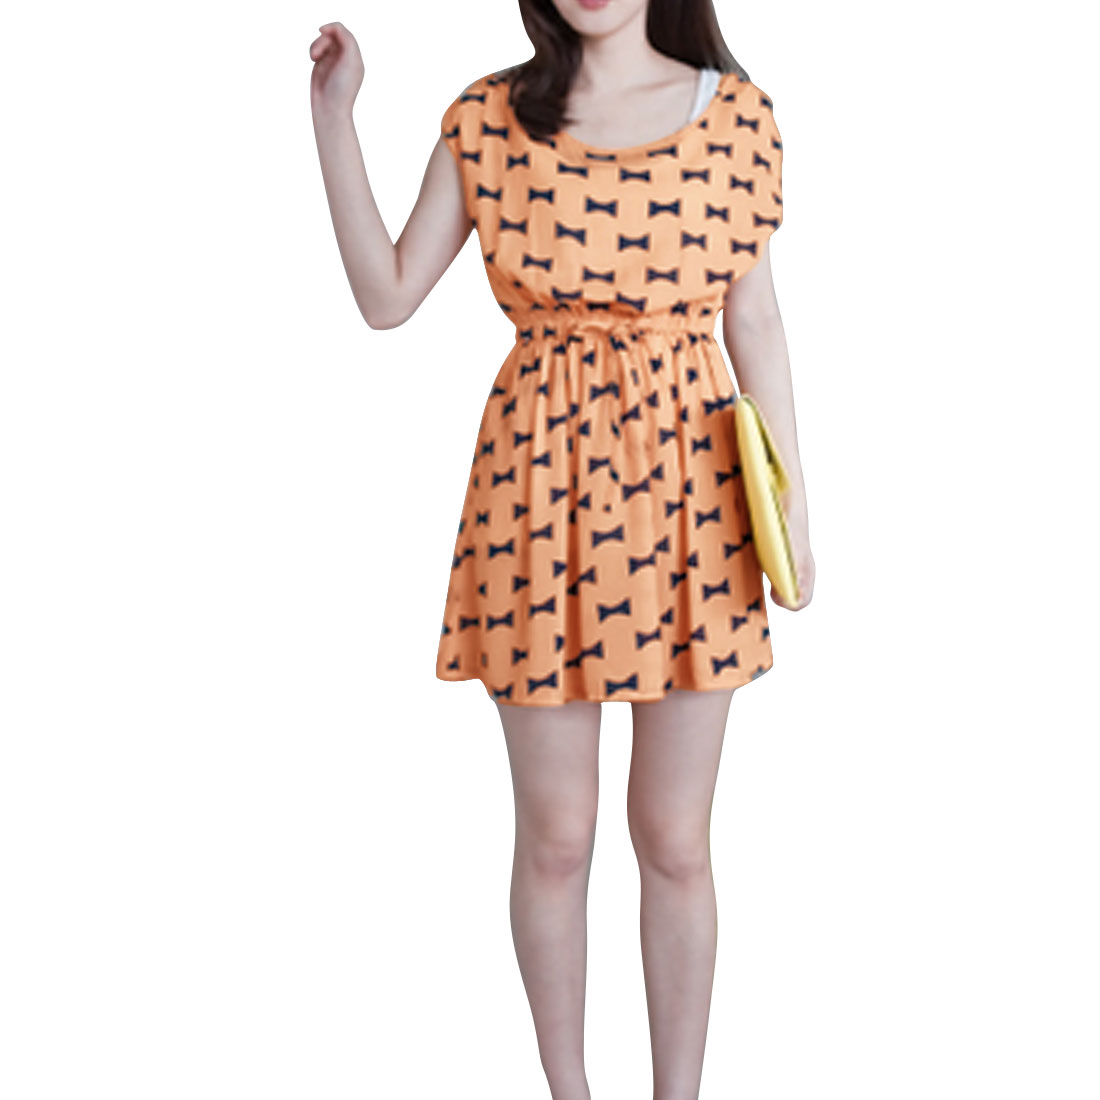 Ladies Round Neck Sleeveless Draw Cord Waist Bowtie Prints Apricot Mini Dress XS